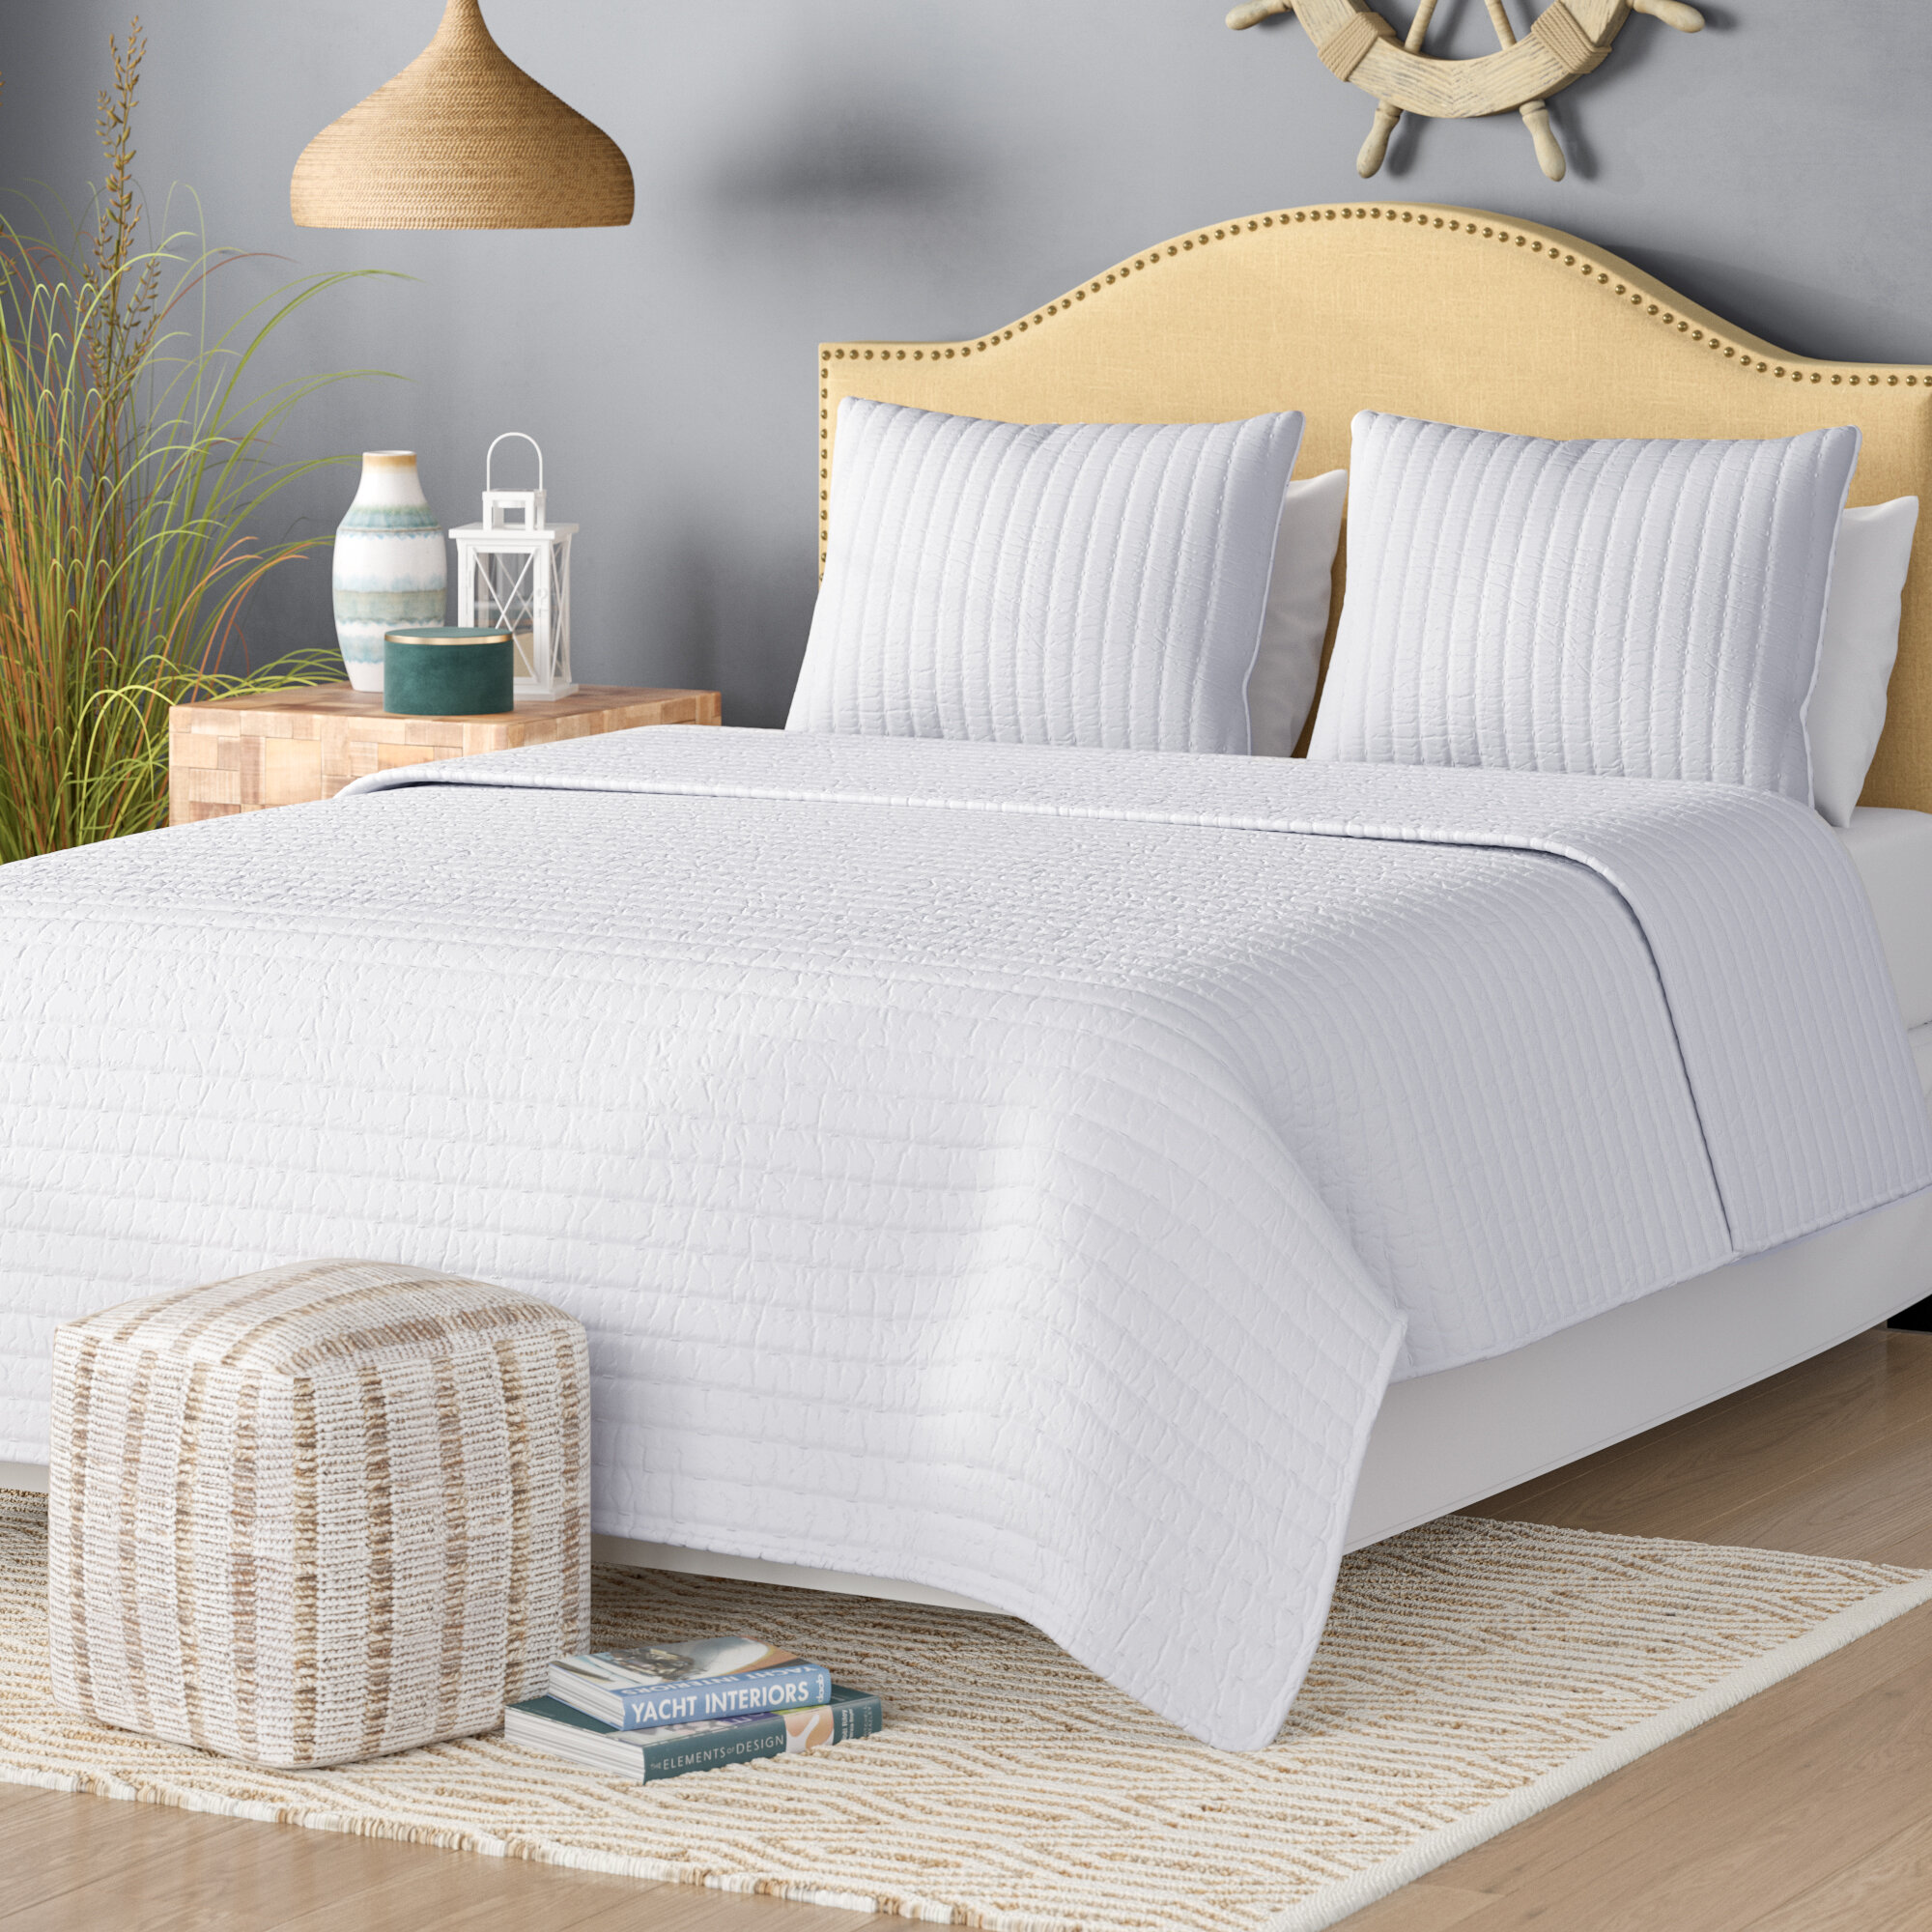 Laurel Foundry Modern Farmhouse Barwick Coverlet Set Reviews Wayfair